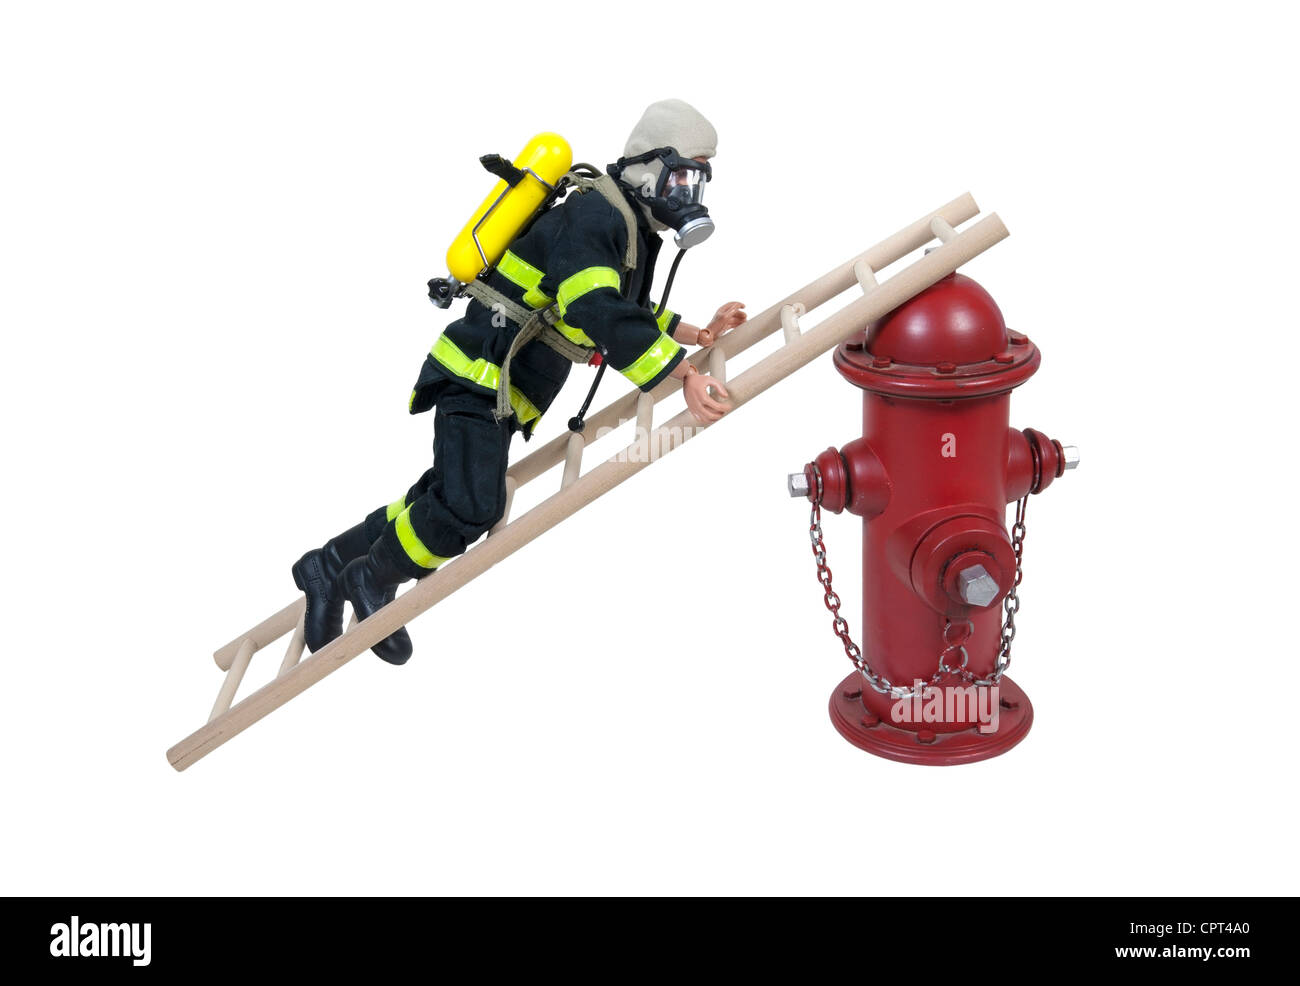 Fireman in protective gear climbing a ladder leaning on a fire hydrant - path included - Stock Image